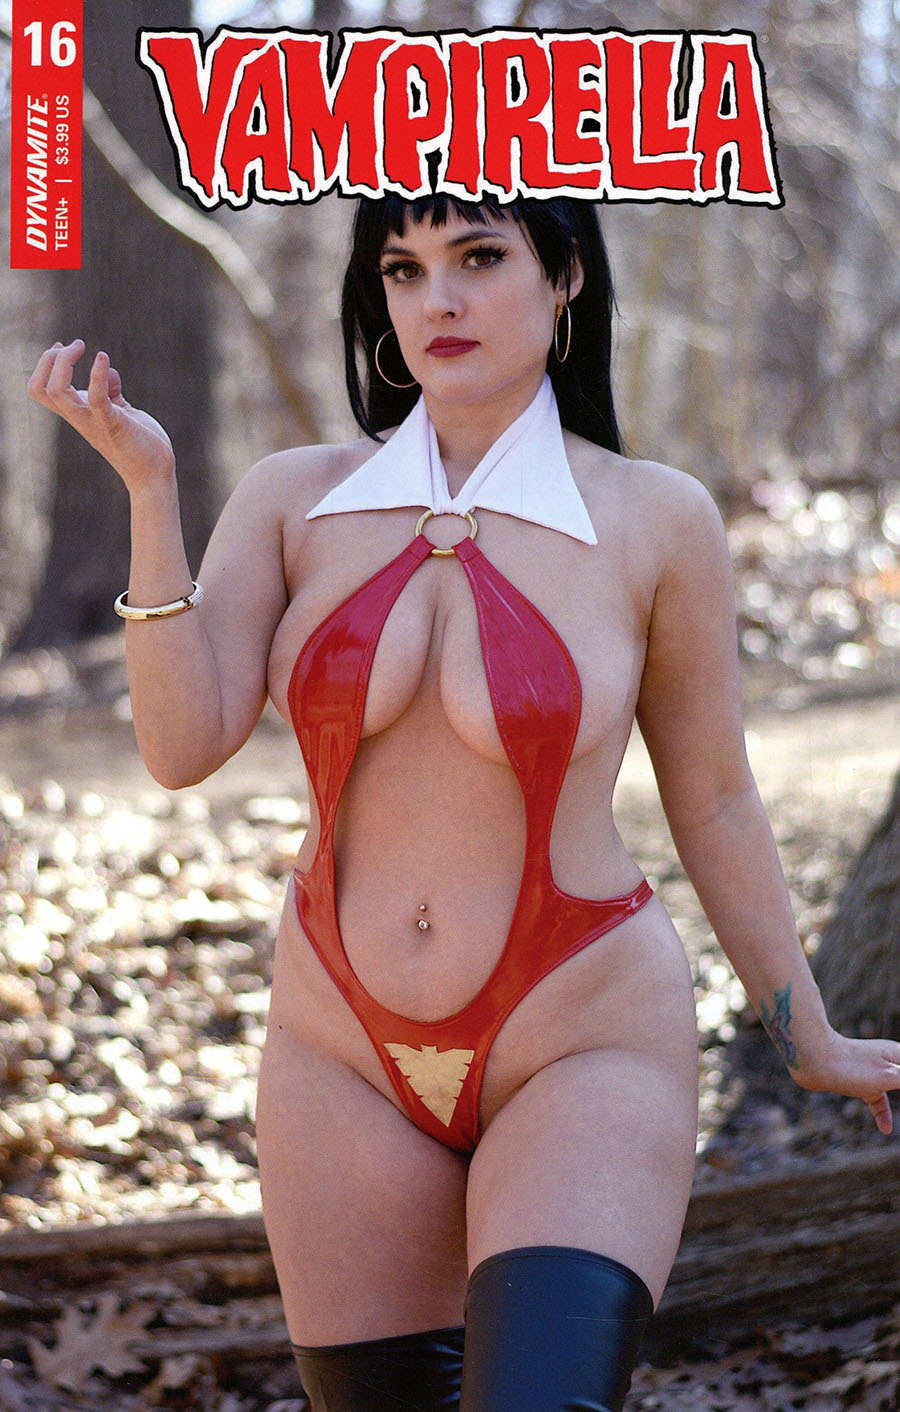 Vampirella Vol 8 #16 Cover E Variant Holly Ophelia Cosplay Photo Cover